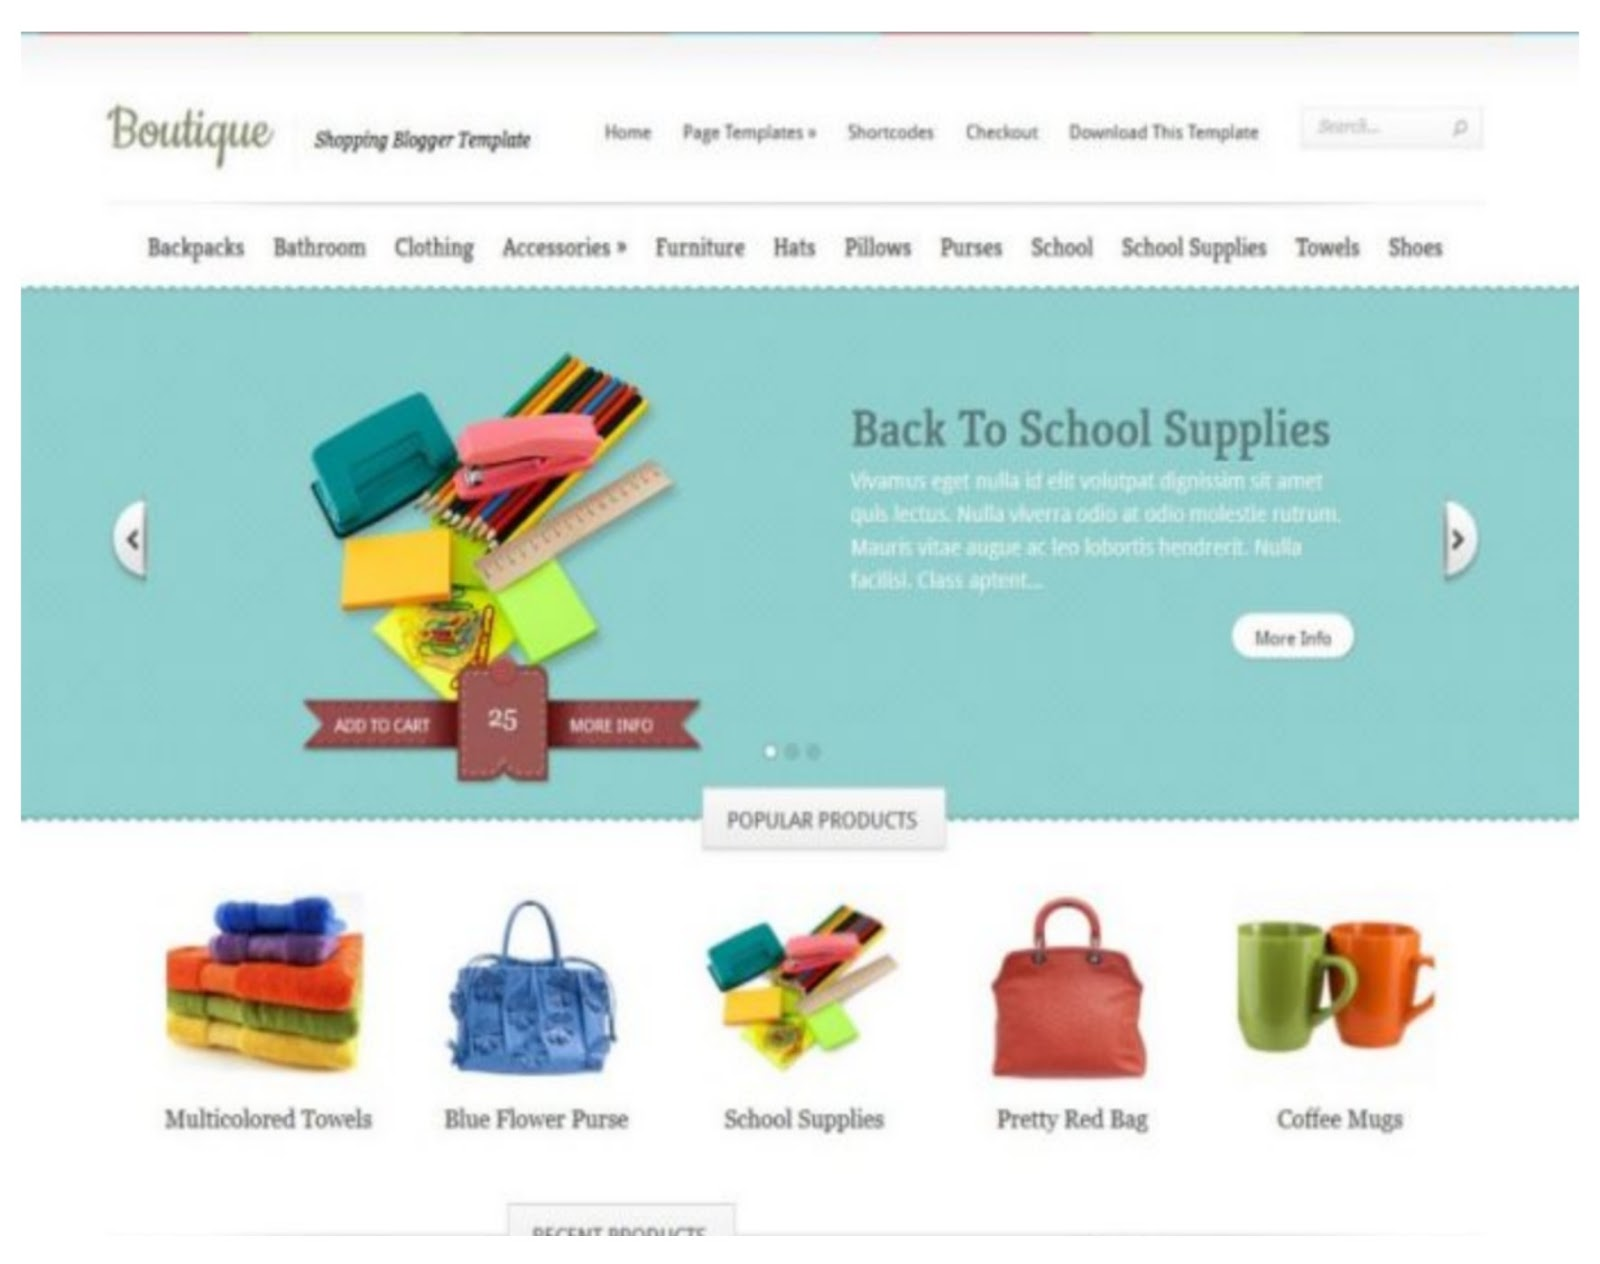 Boutique Shopping Store Template